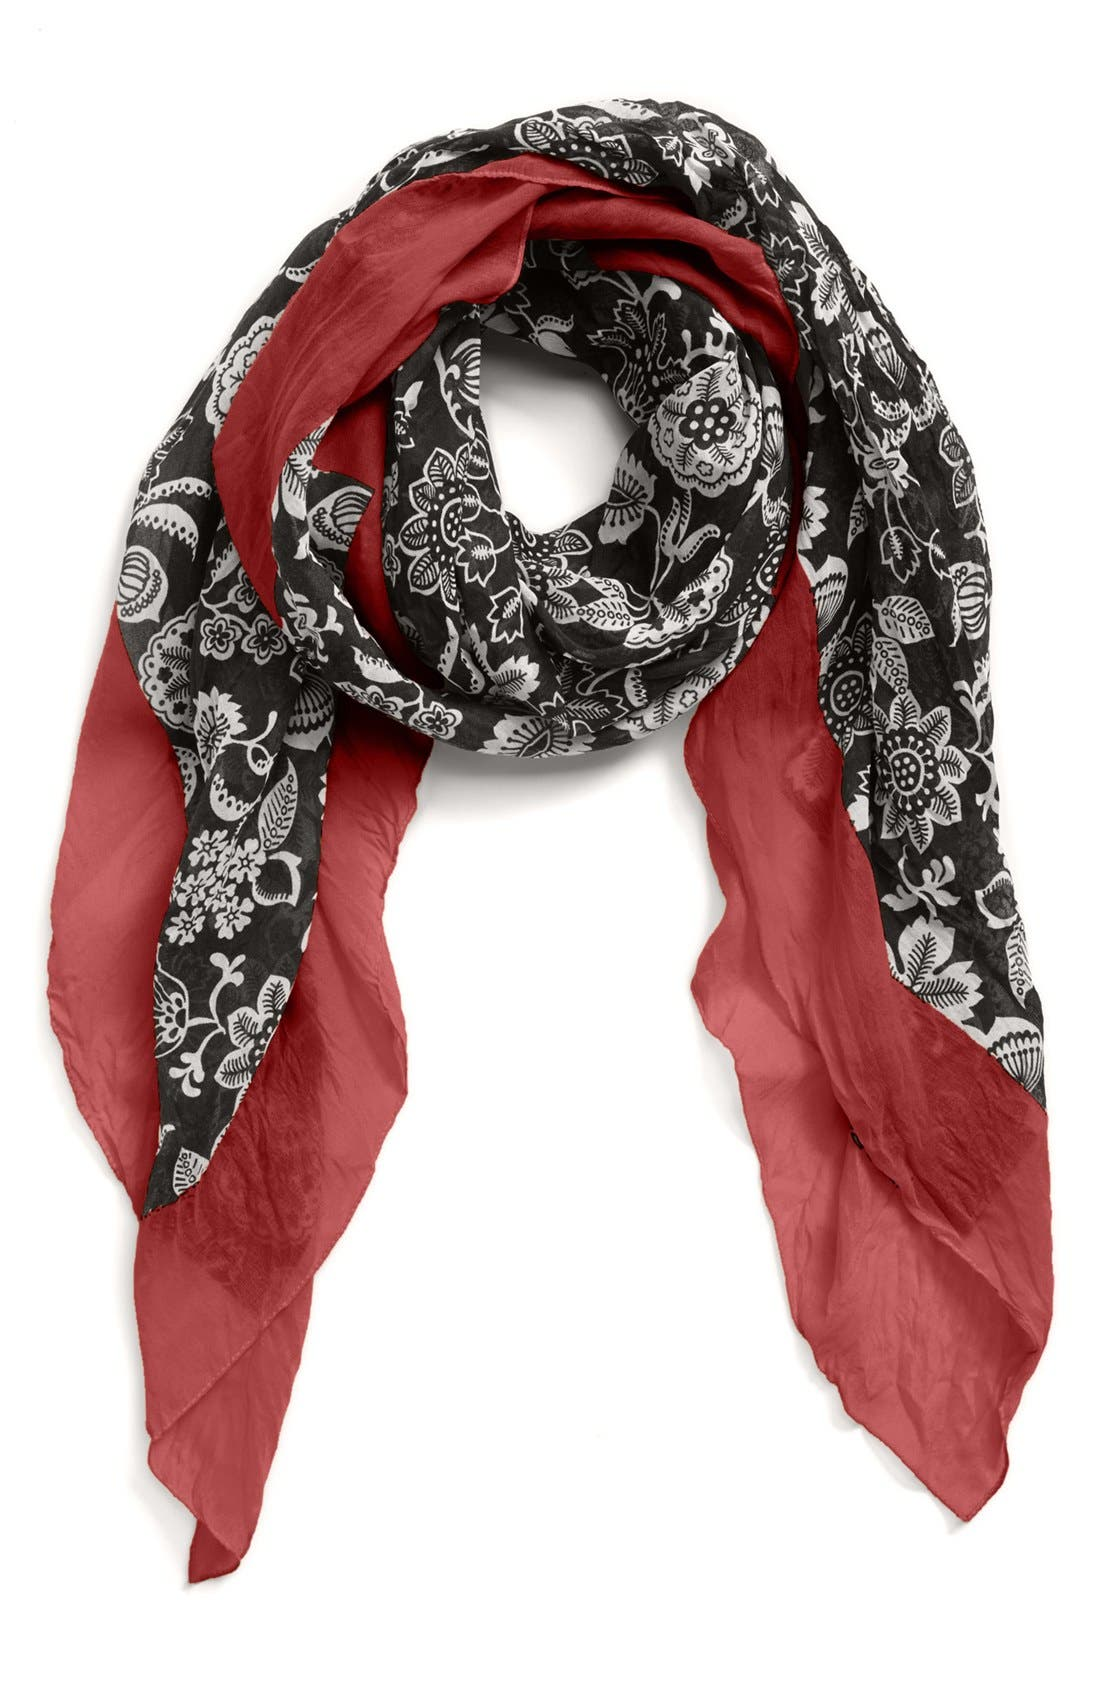 Alternate Image 1 Selected - Nordstrom 'Gypsy Floral' Square Scarf